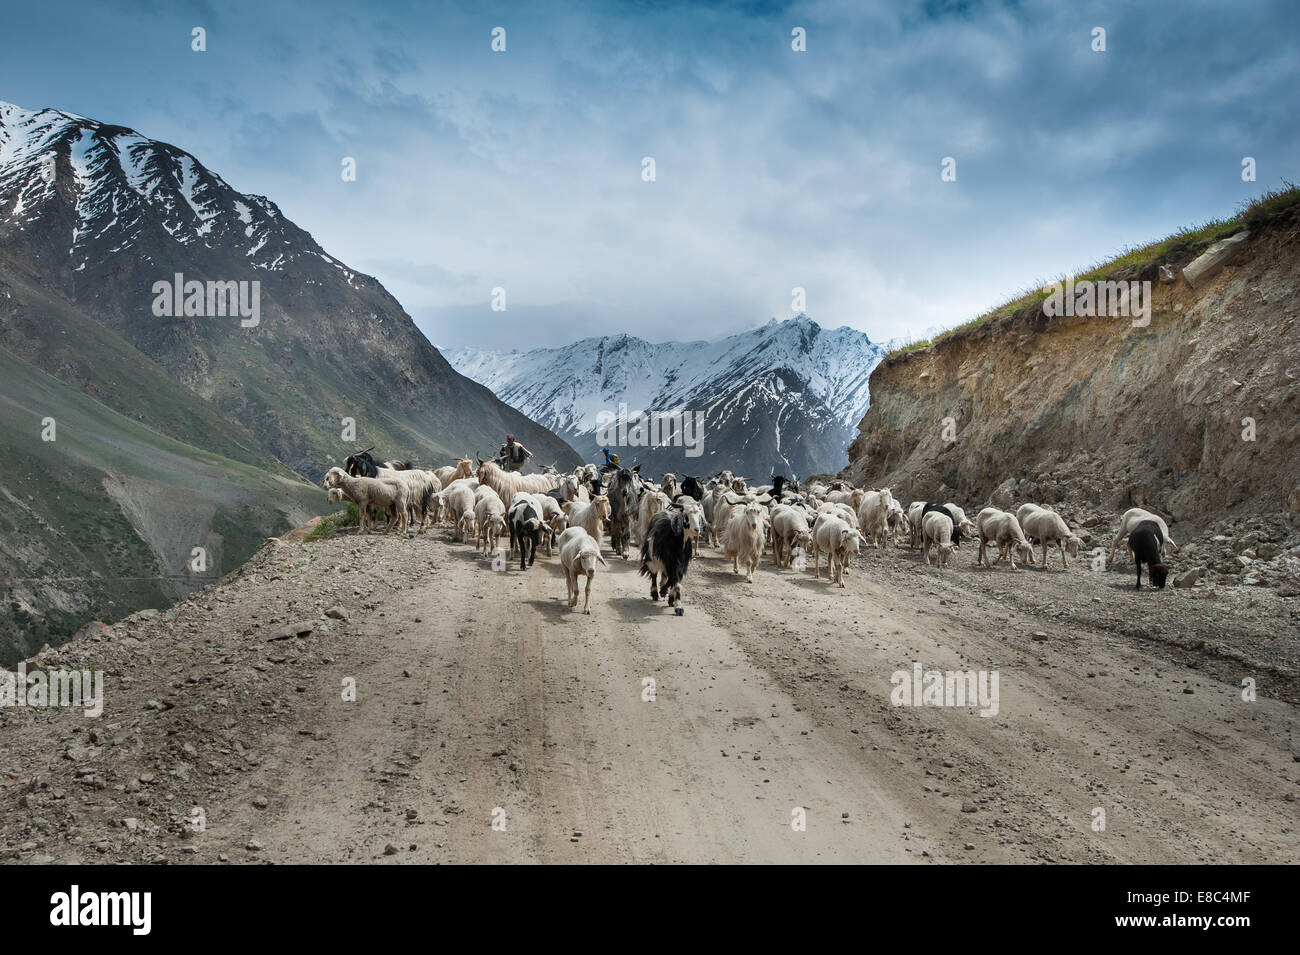 Mountain Nomads is out  for herding on Leh Manali Highway, - Stock Image